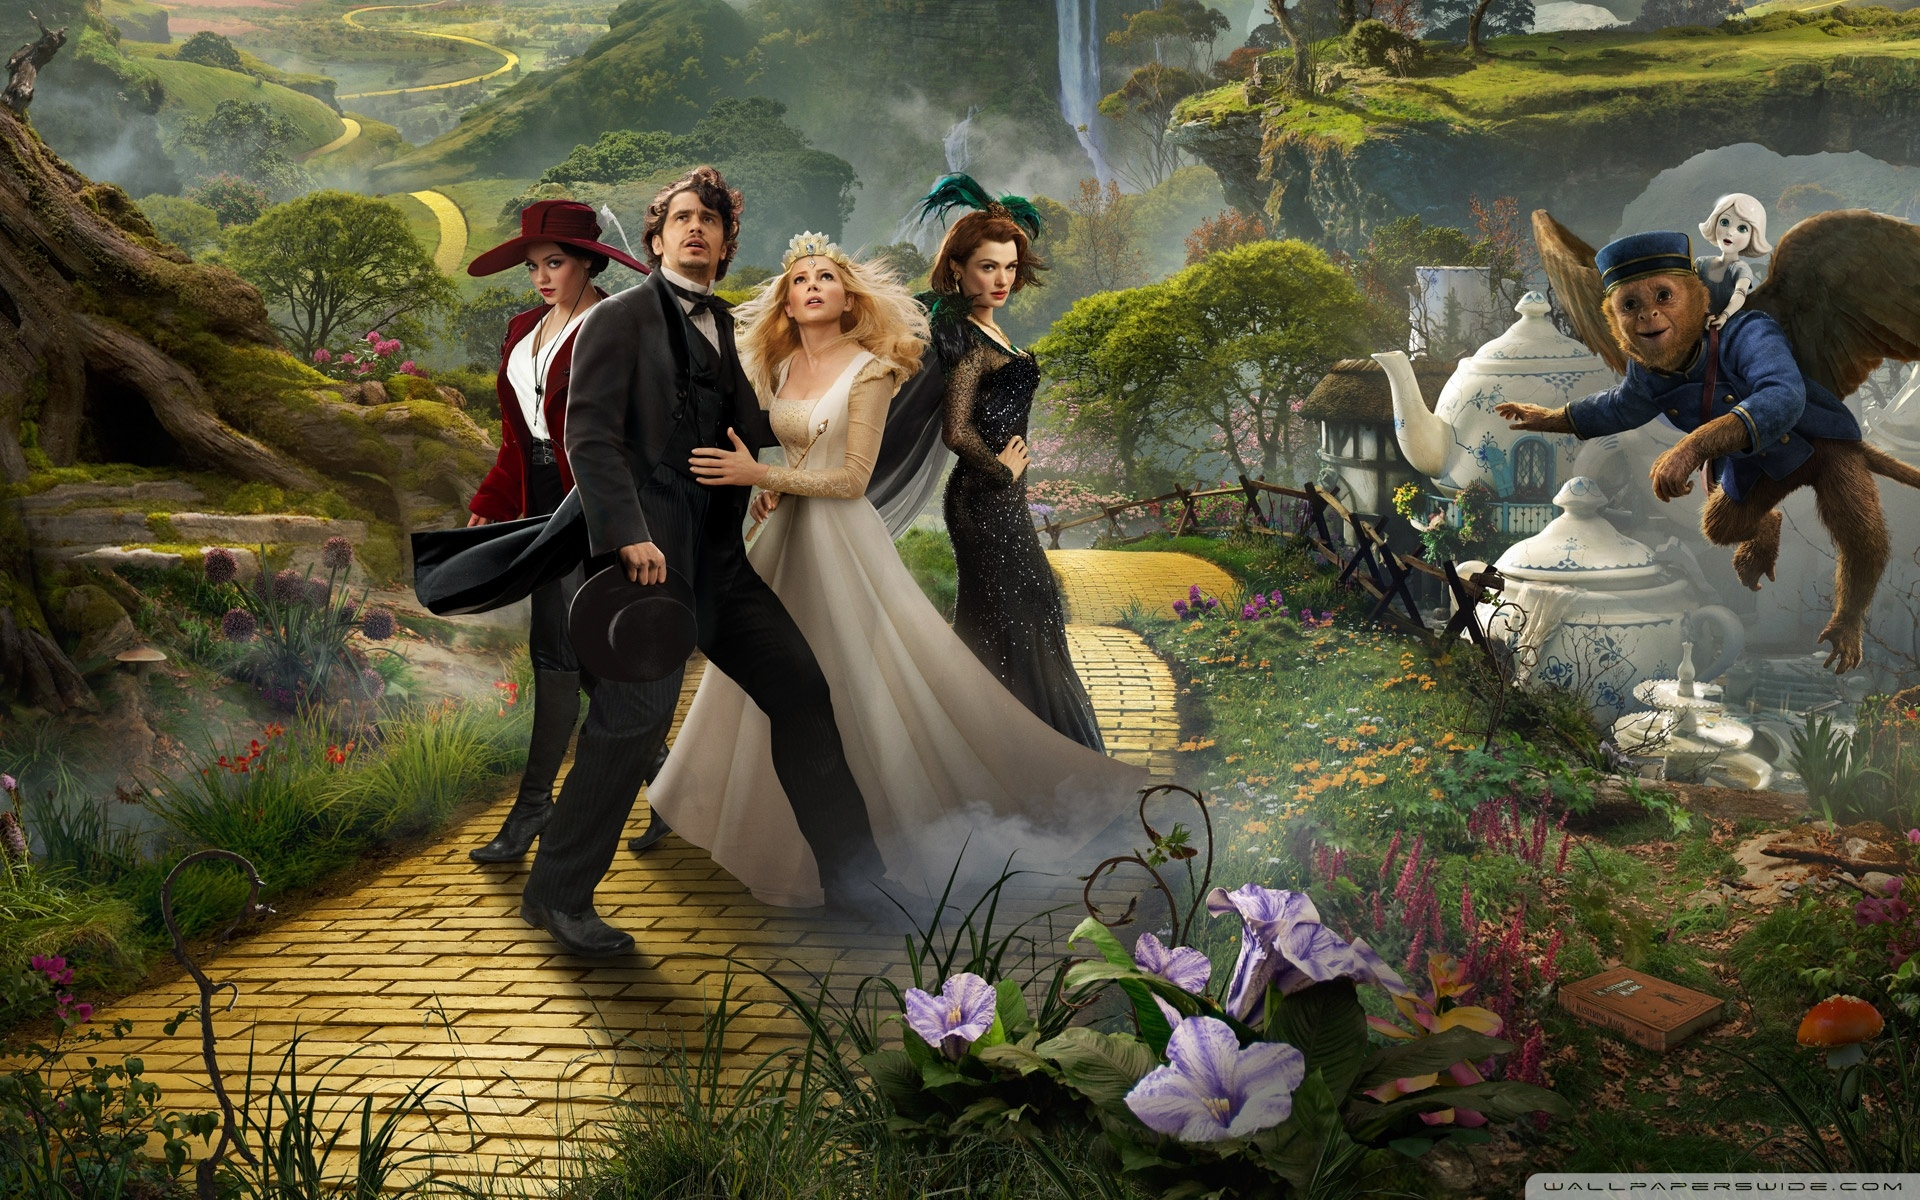 Oz The Great and Powerful Fantasy Movie